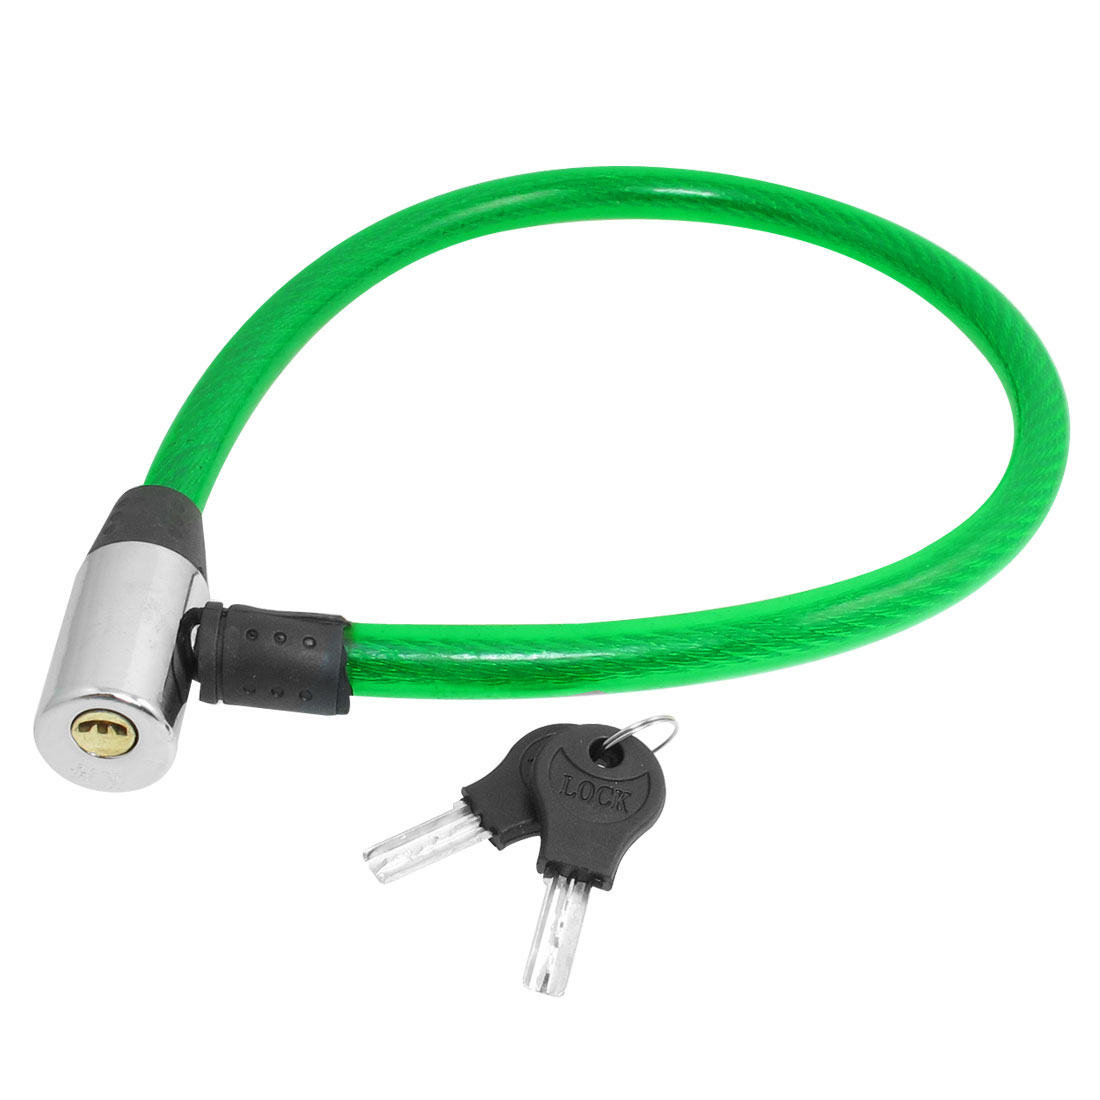 Bicycle Motorcycle Security Green Plastic Coated Cable Lock w 2 Keys